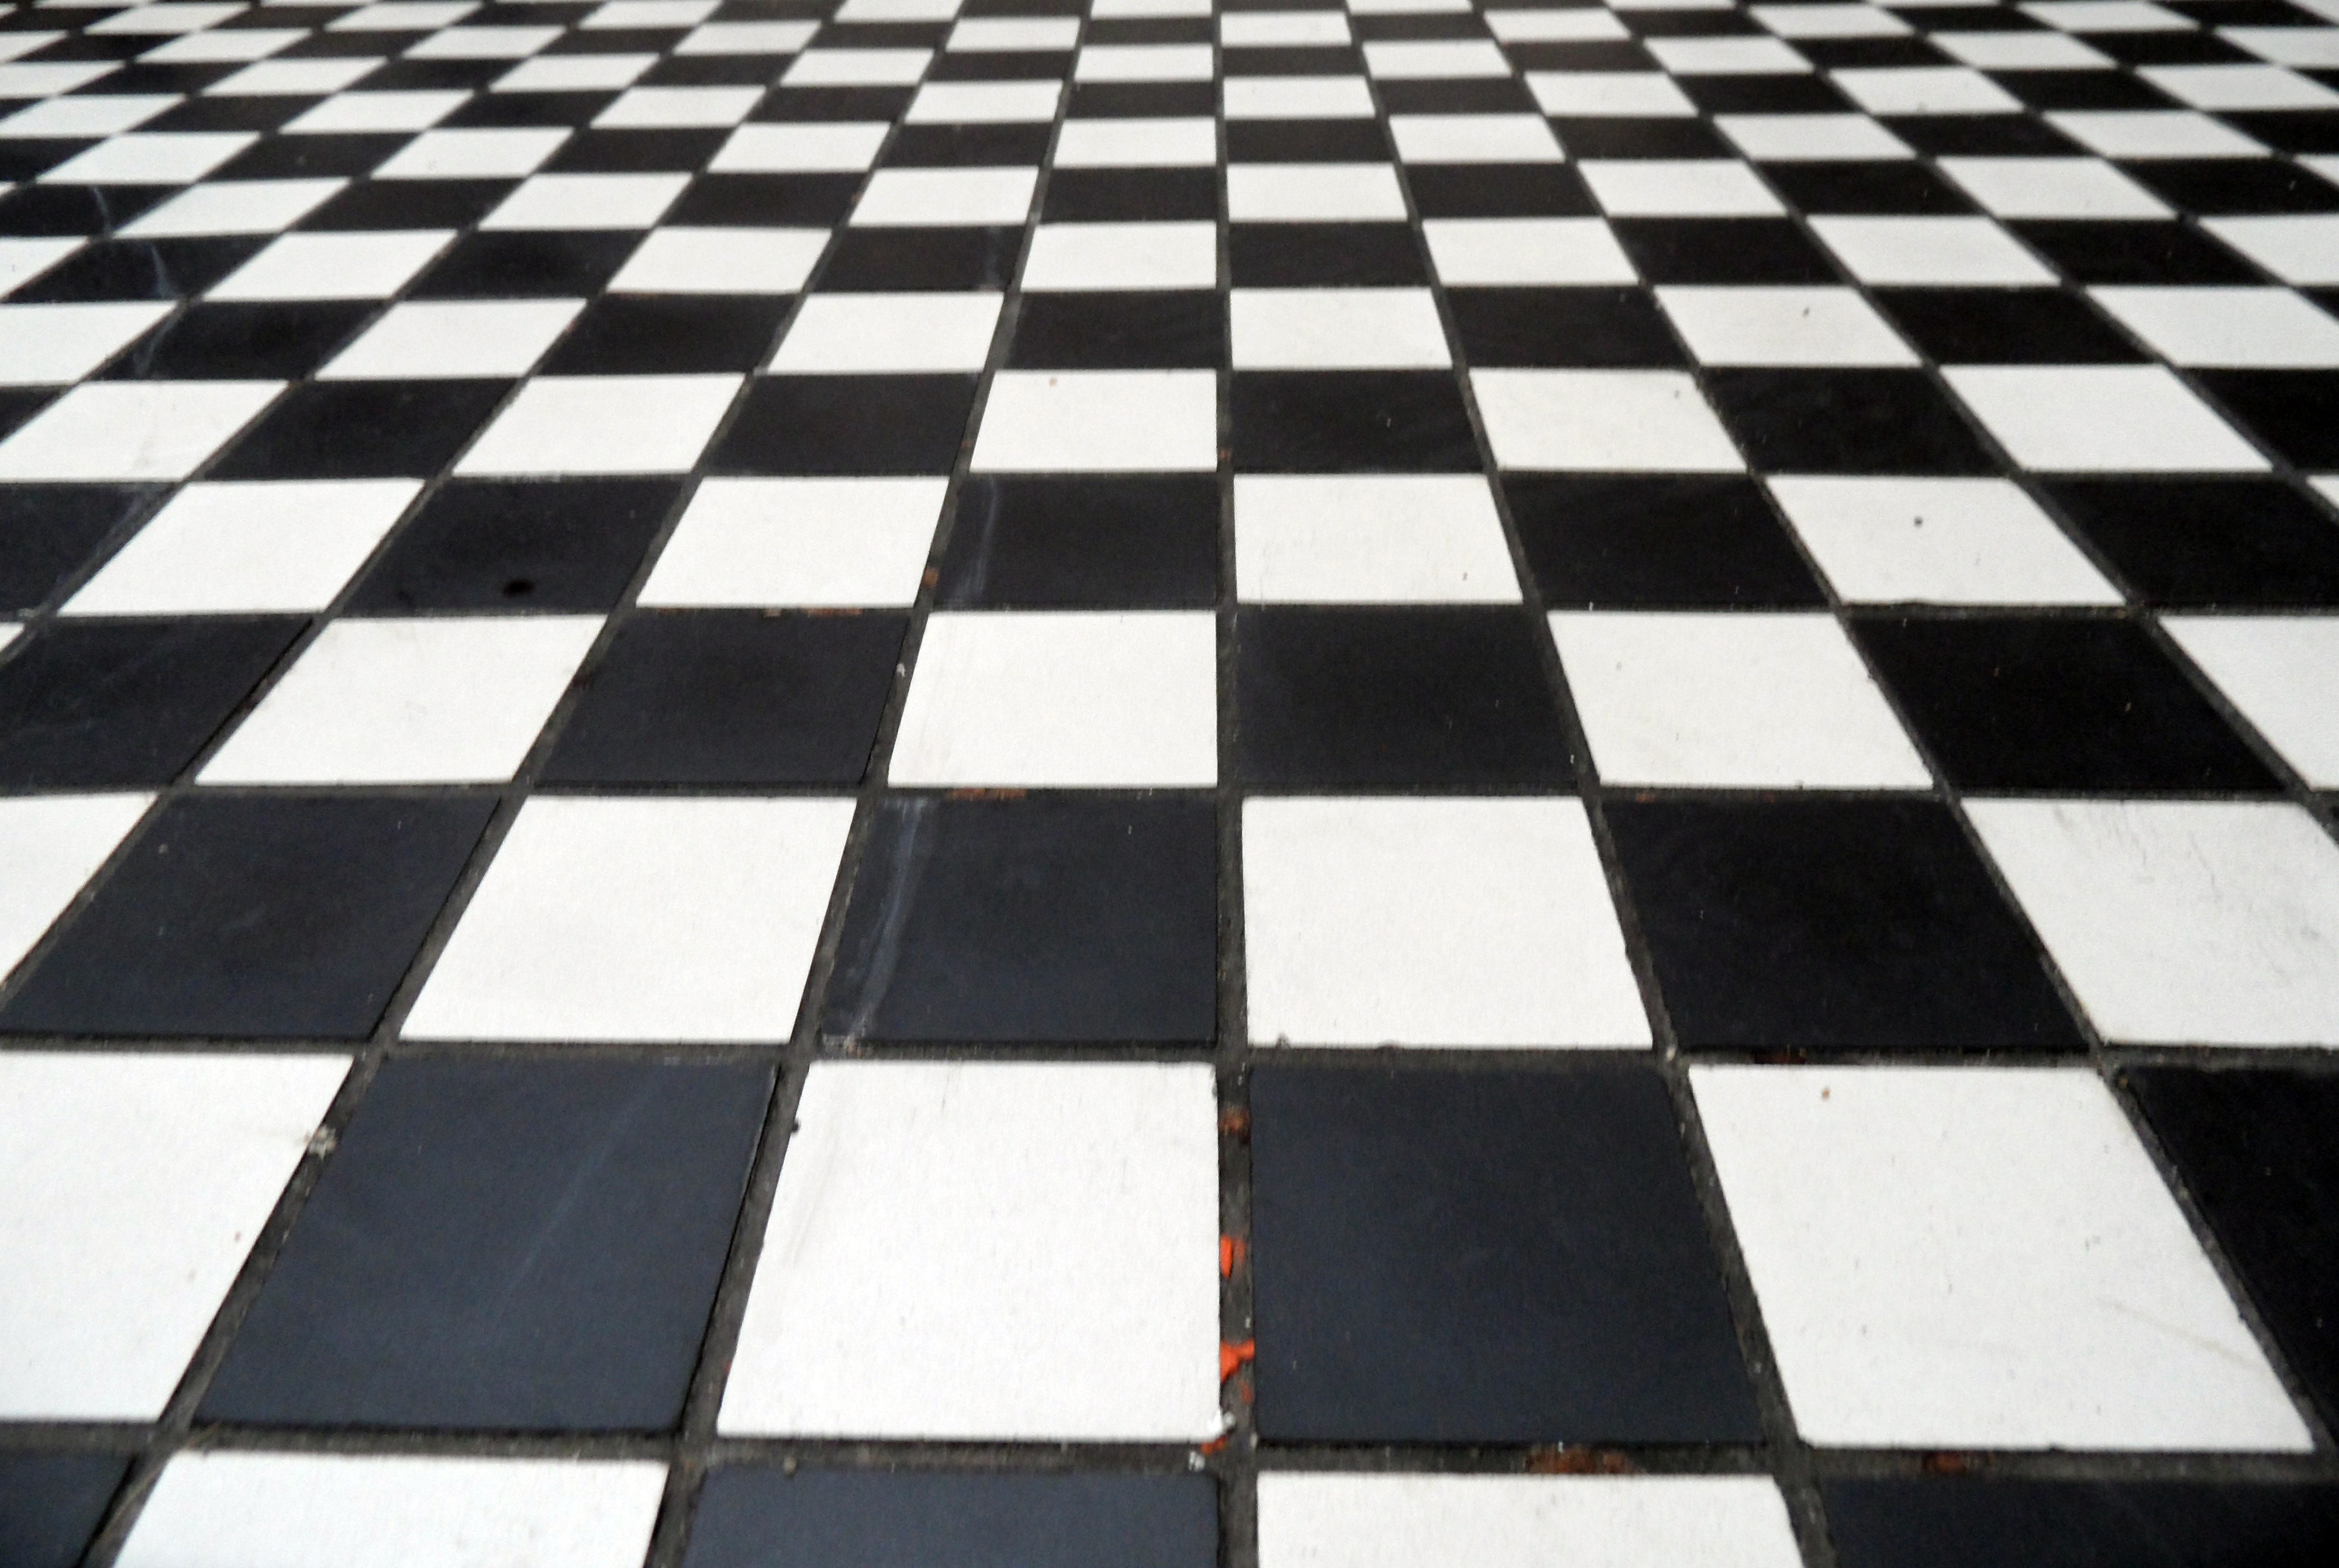 Floor clipart checkerboard. Fascinating checkered tile classic